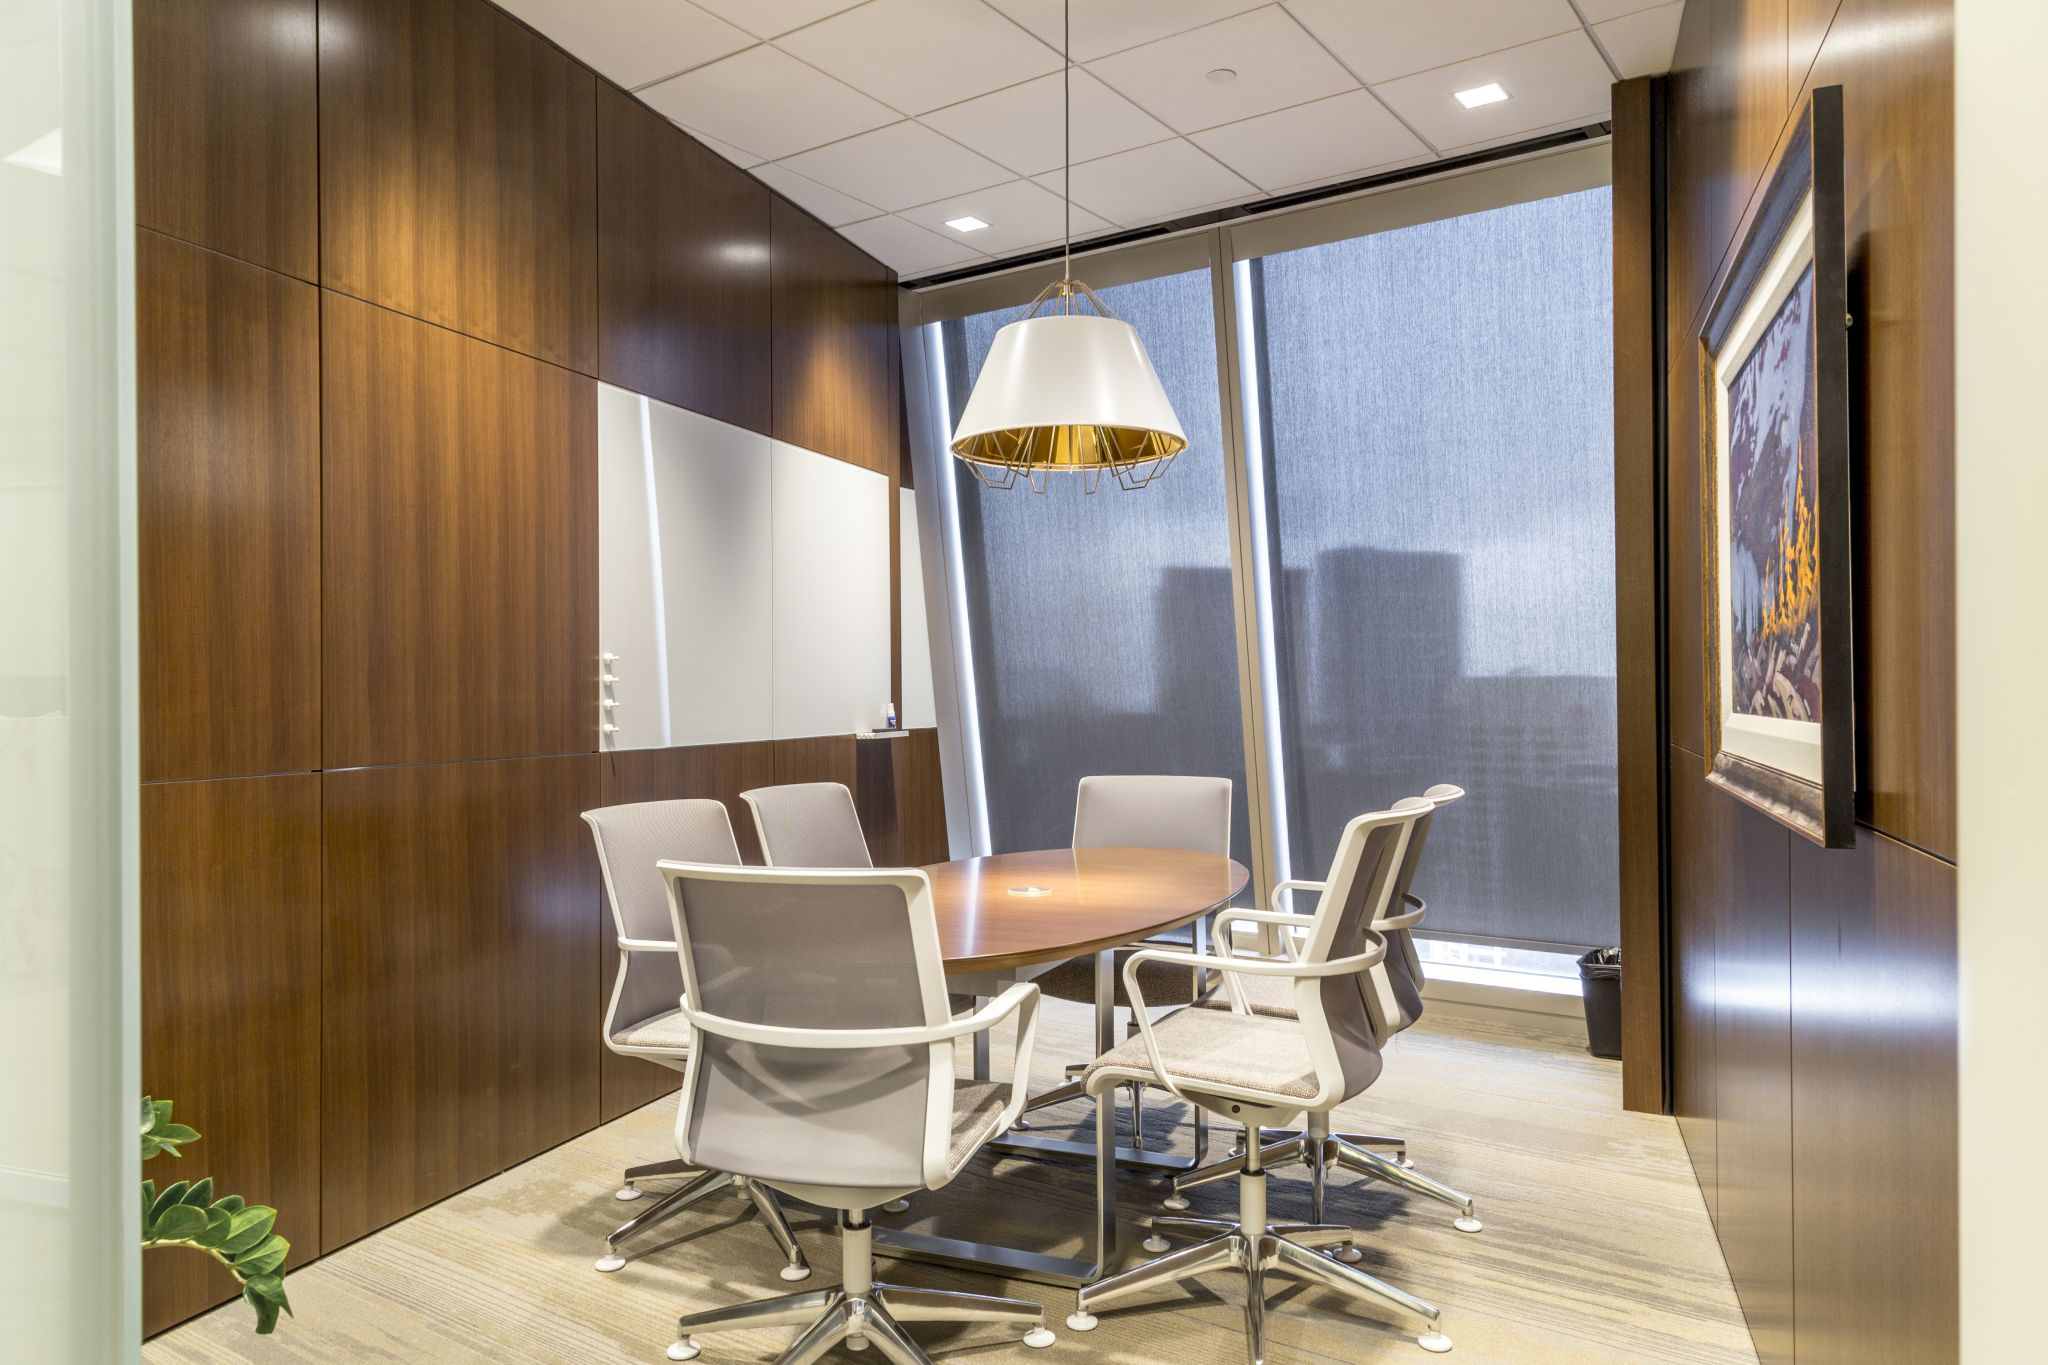 choosing prefab for offices with superior function and flexibility